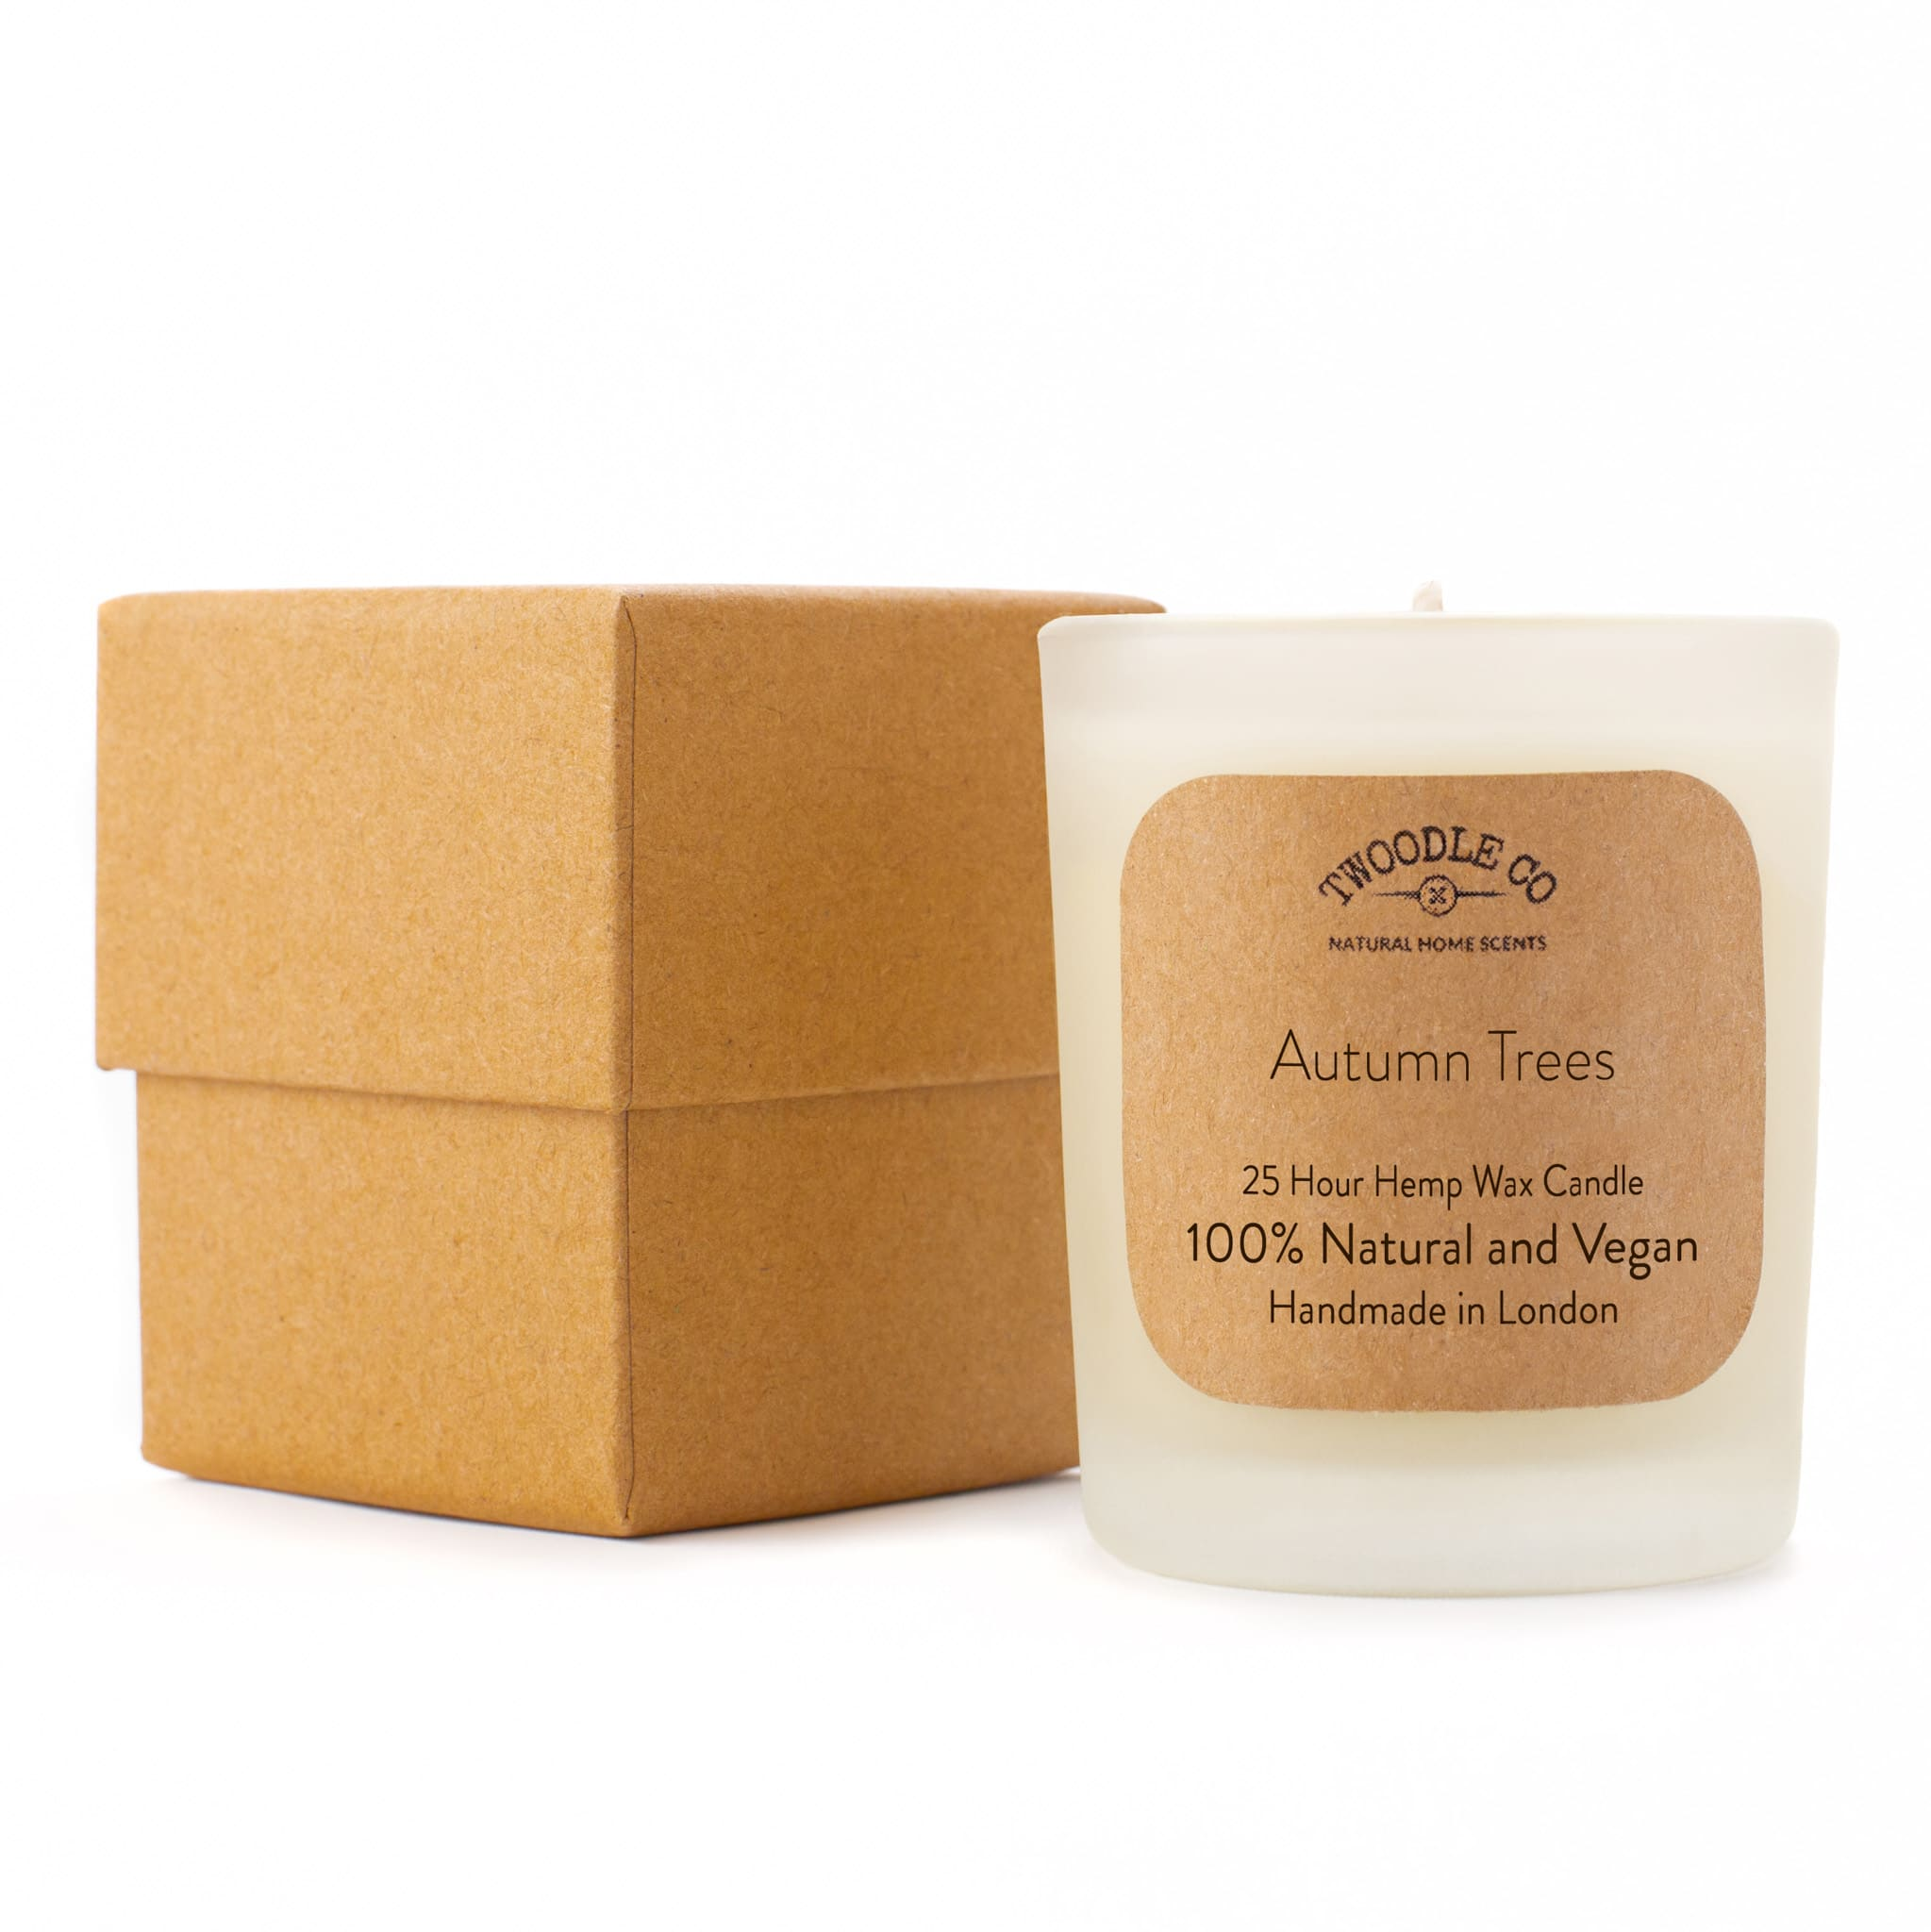 Autumn Trees Small Scented Hemp Wax candle by Twoodle Co Natural Home Scents